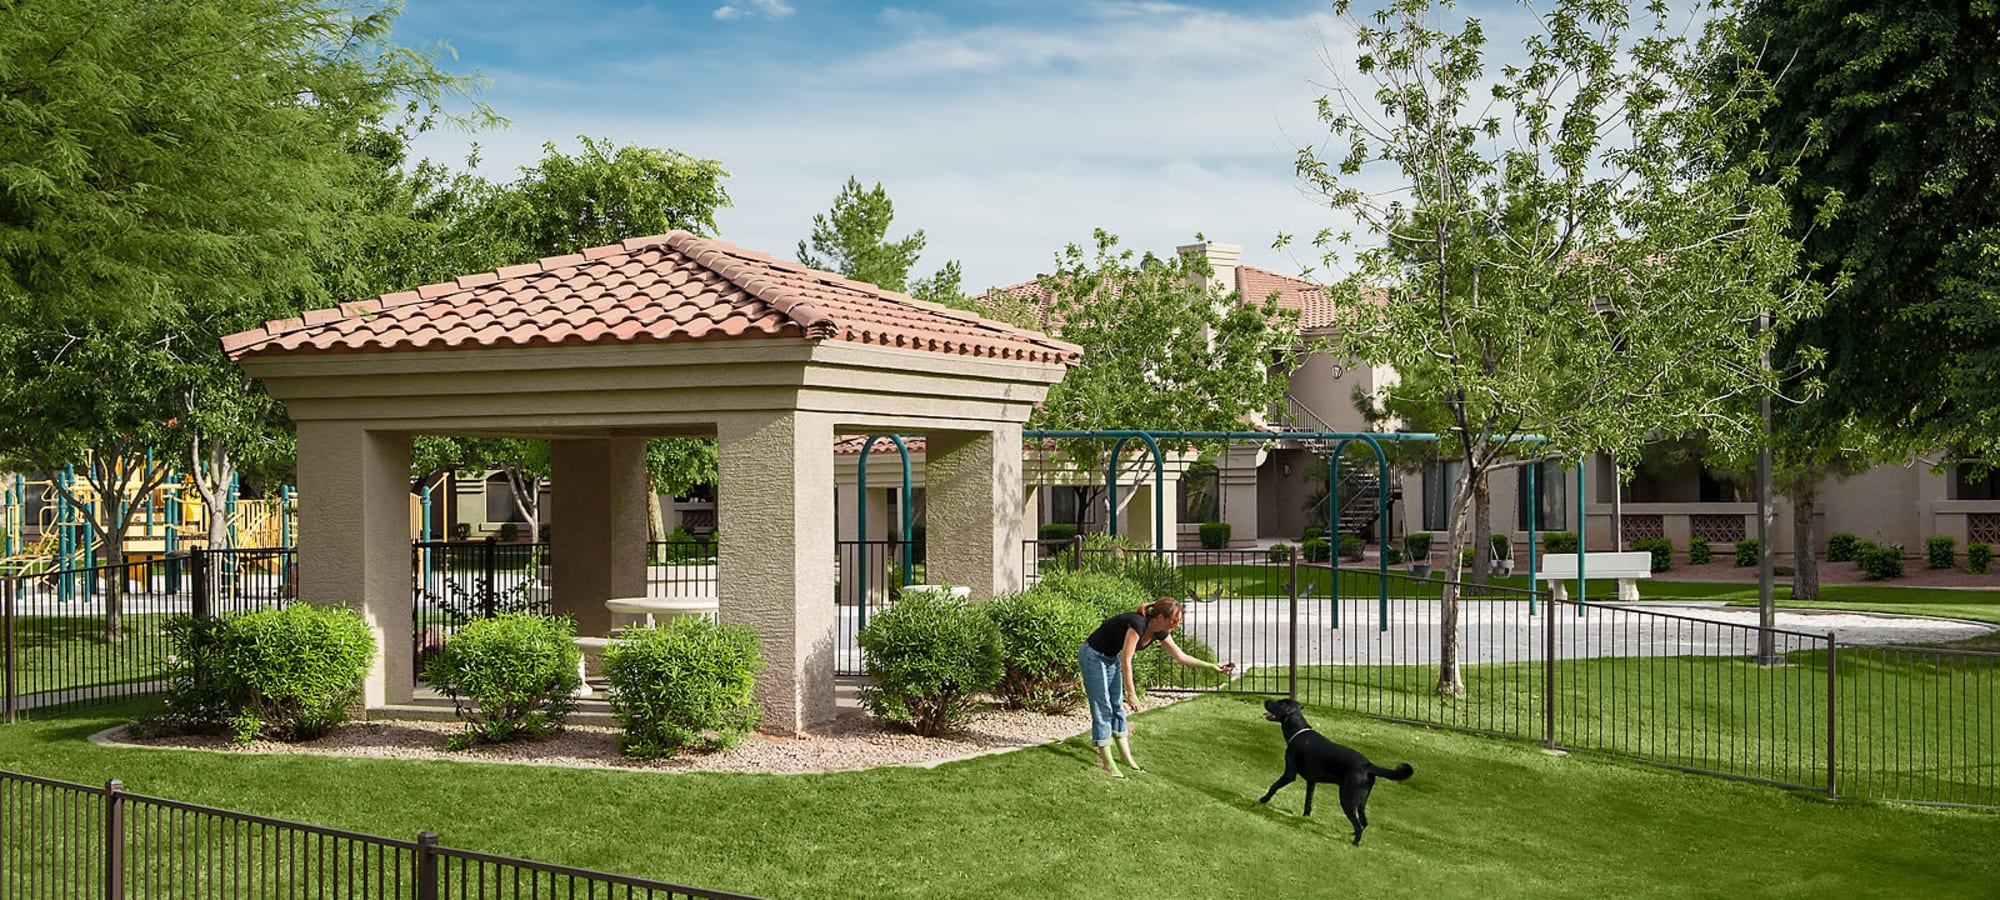 Onsite dog park with well-maintained lawn at San Pedregal in Phoenix, Arizona